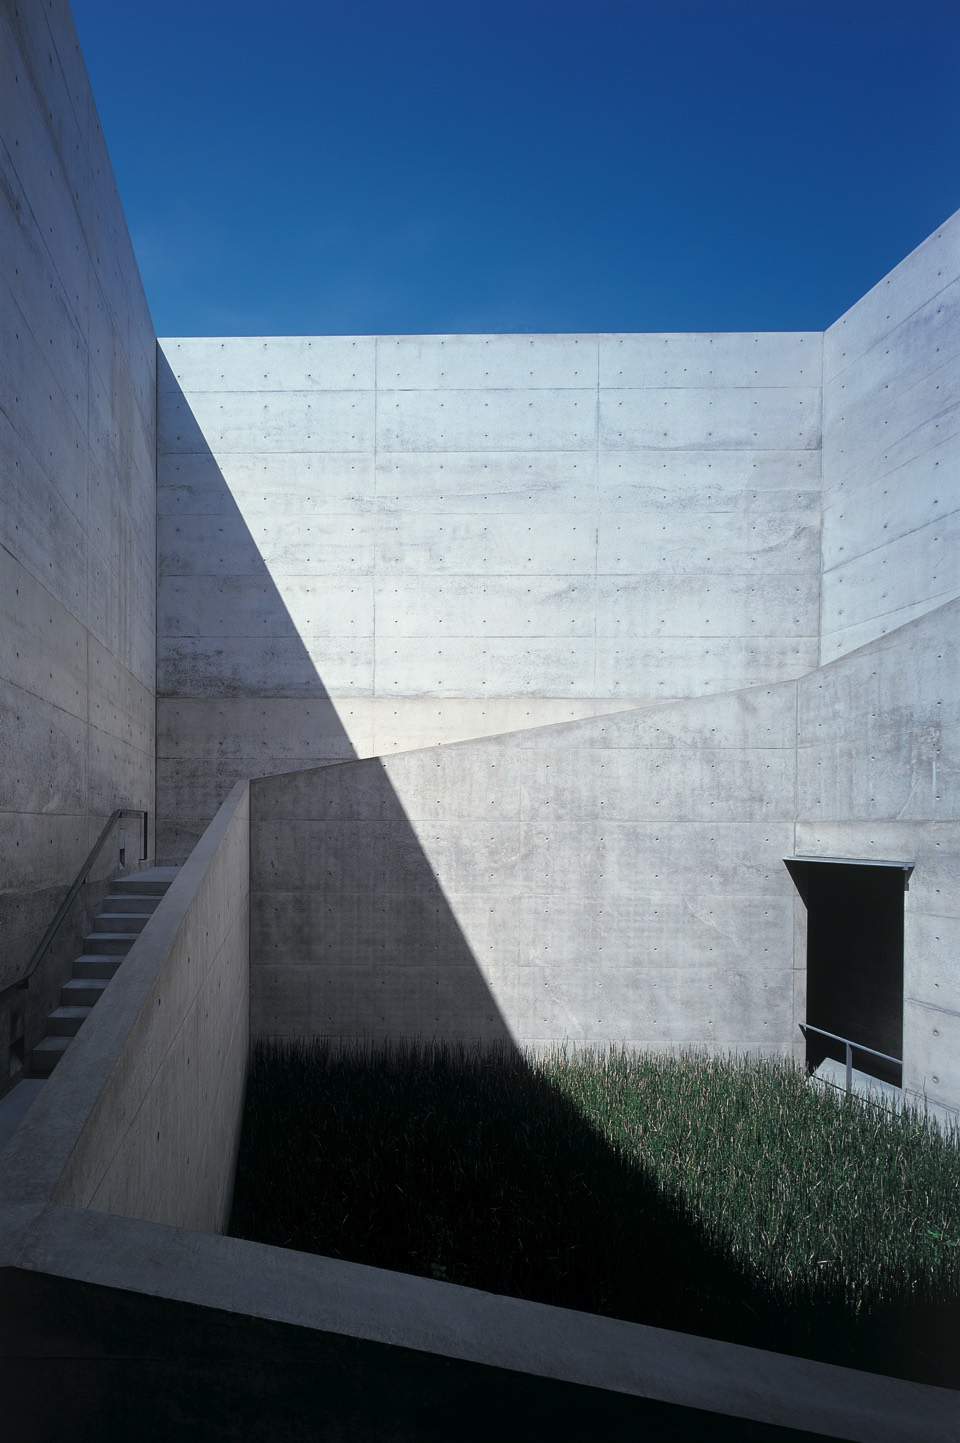 Architect Tadao Ando